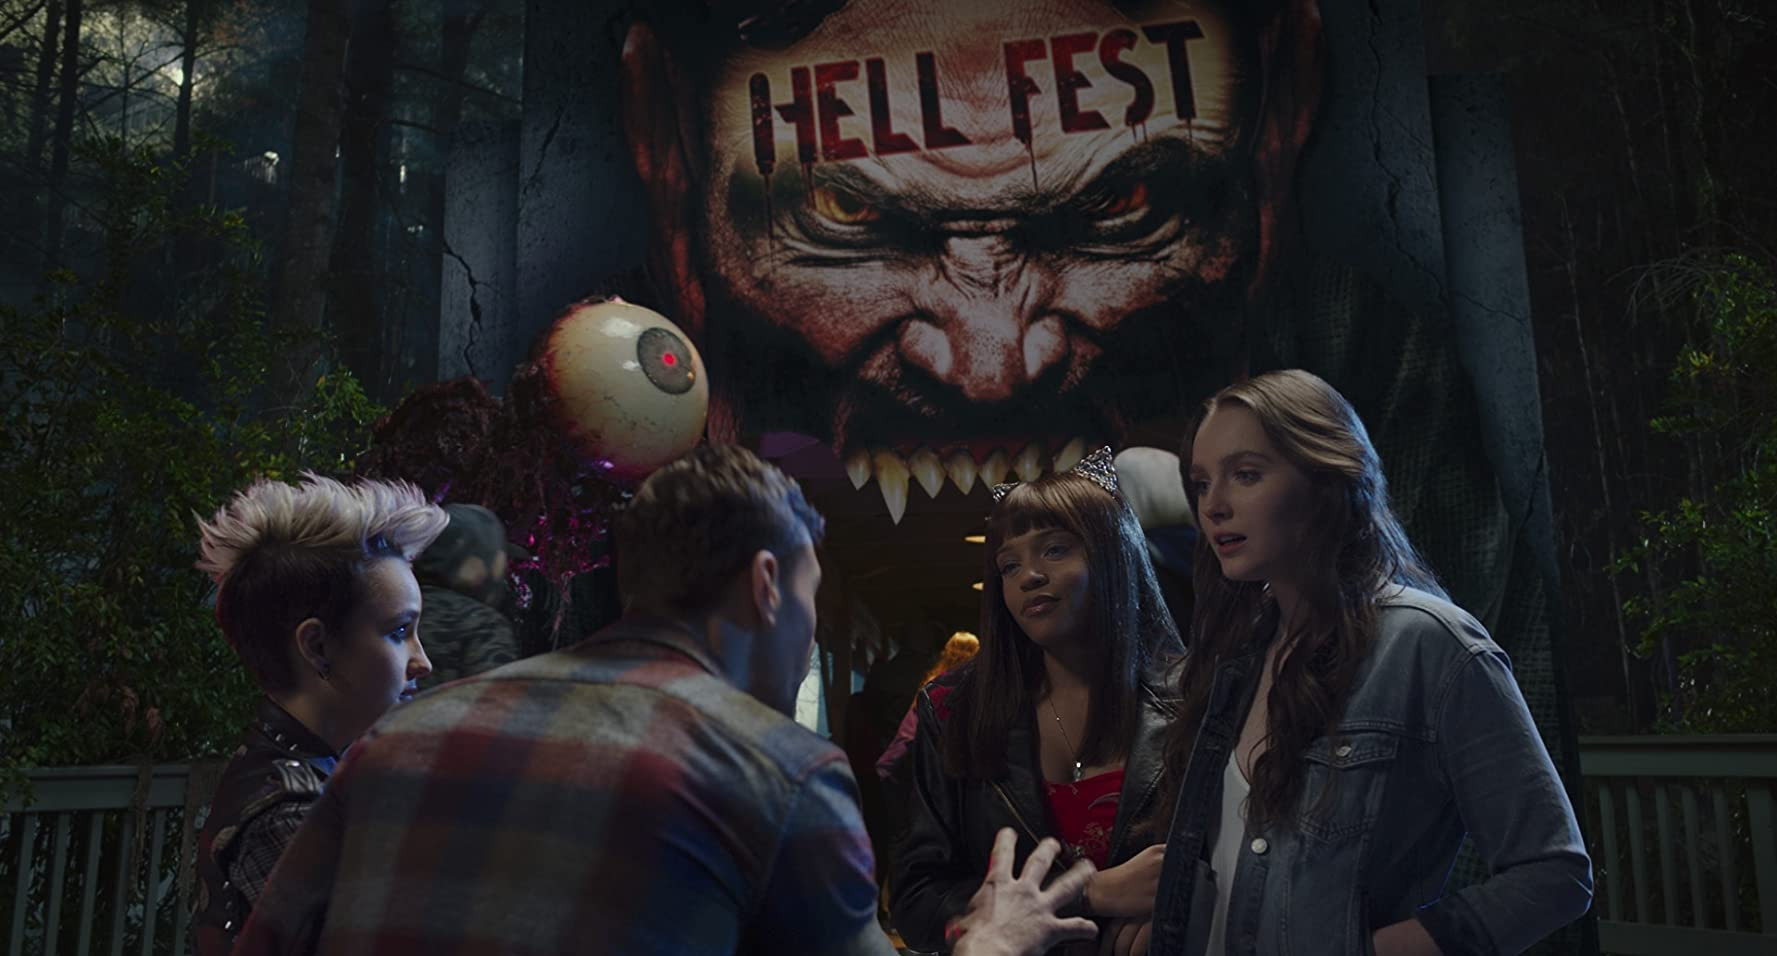 hell fest movie review parque dos infernos crítica